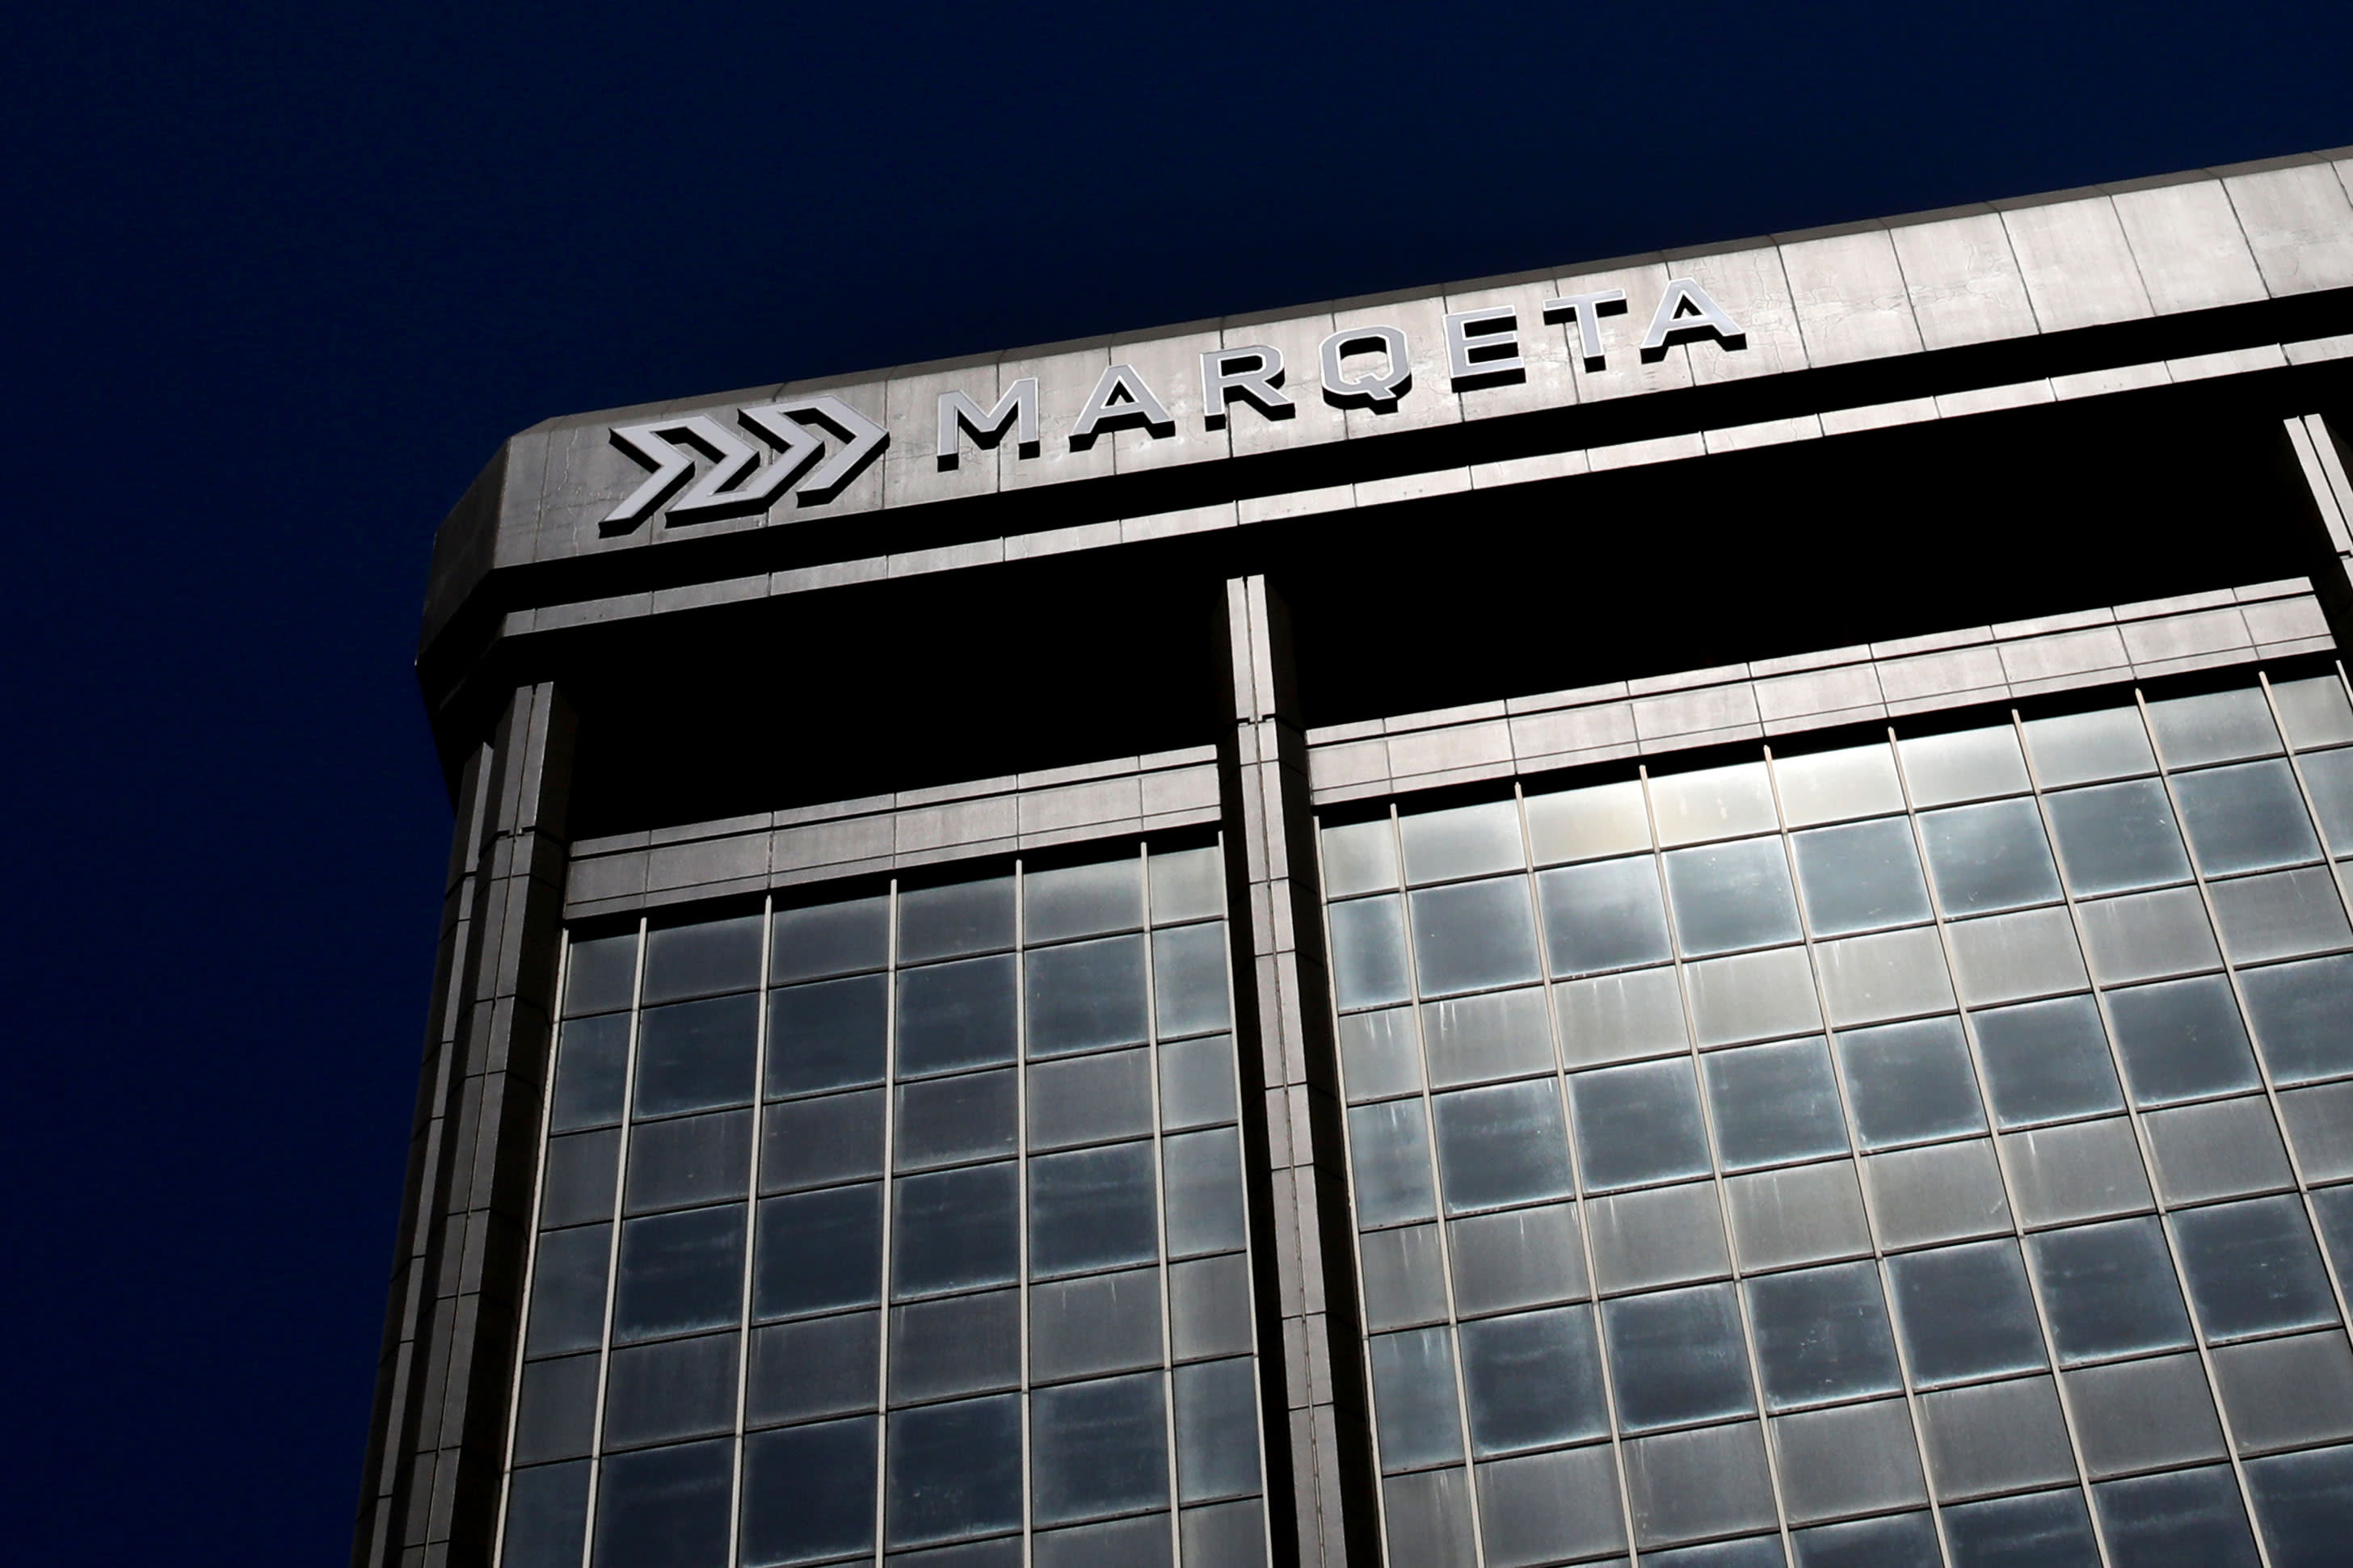 Payment tech company Marqeta files for IPO as value tops $16 billion on private markets